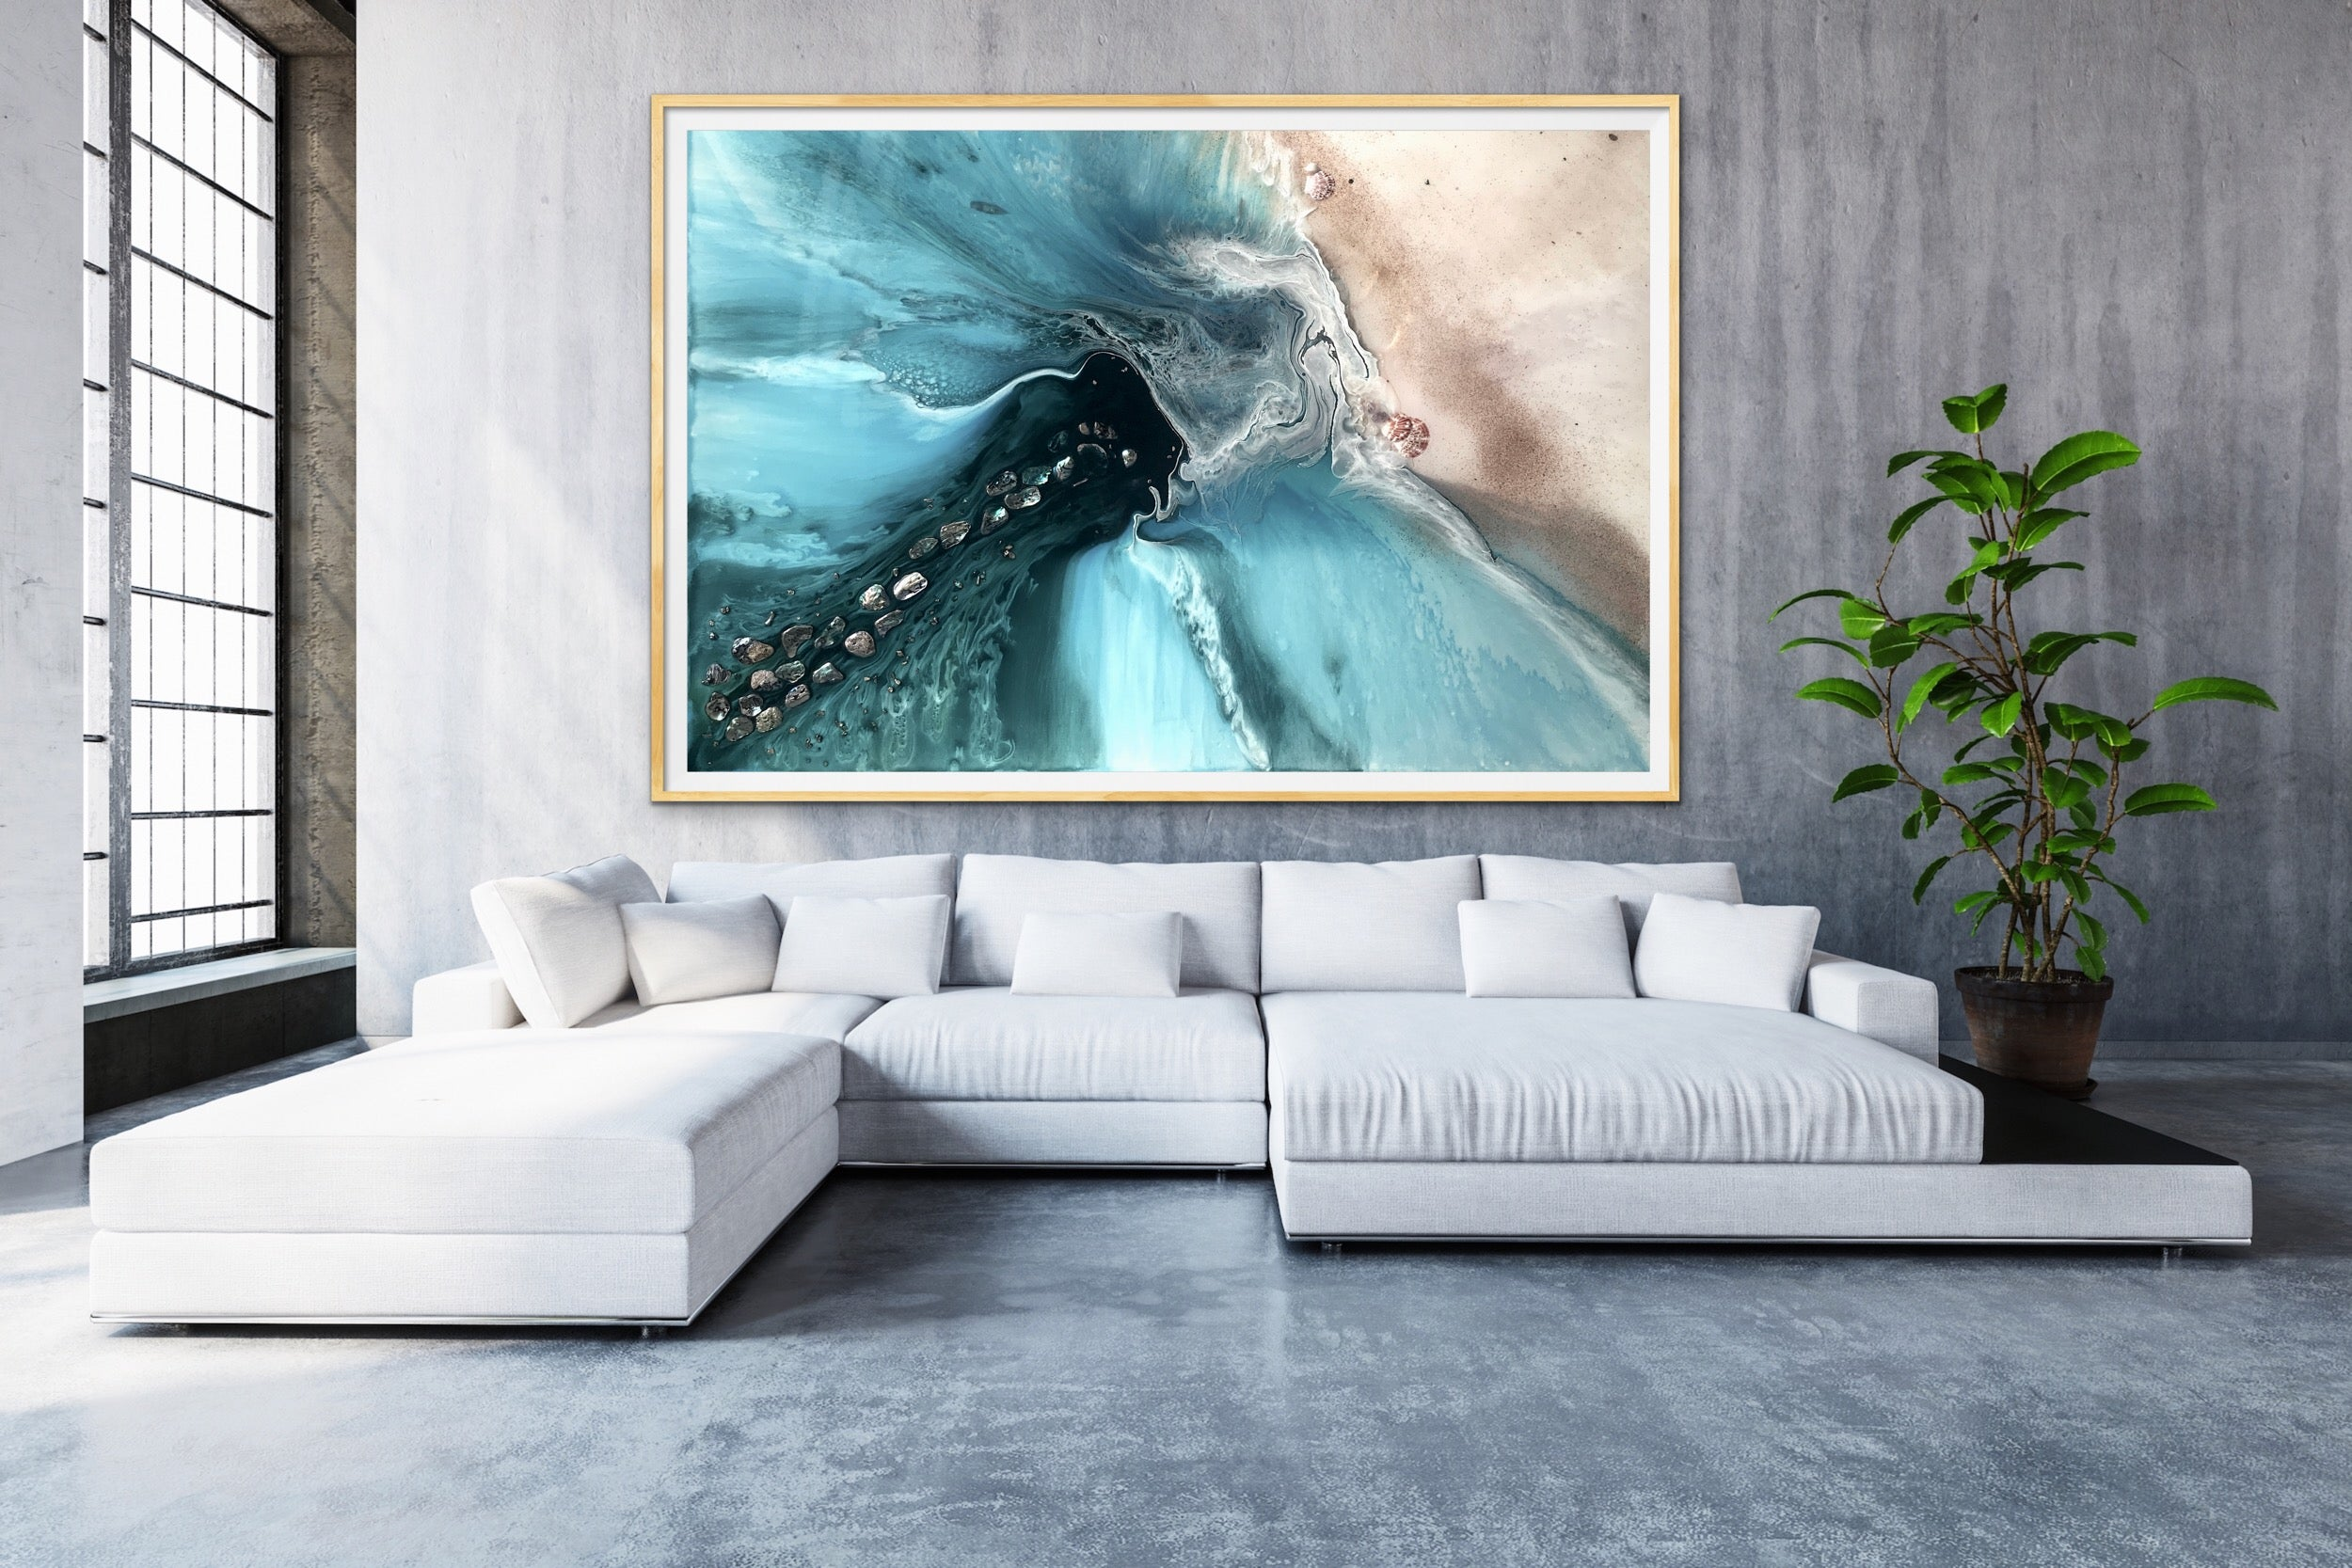 Abstract Sea. Muted Teal. Rise Above 4 Neutral. Art print. Antuanelle Ocean Seascape. Limited Edition Print